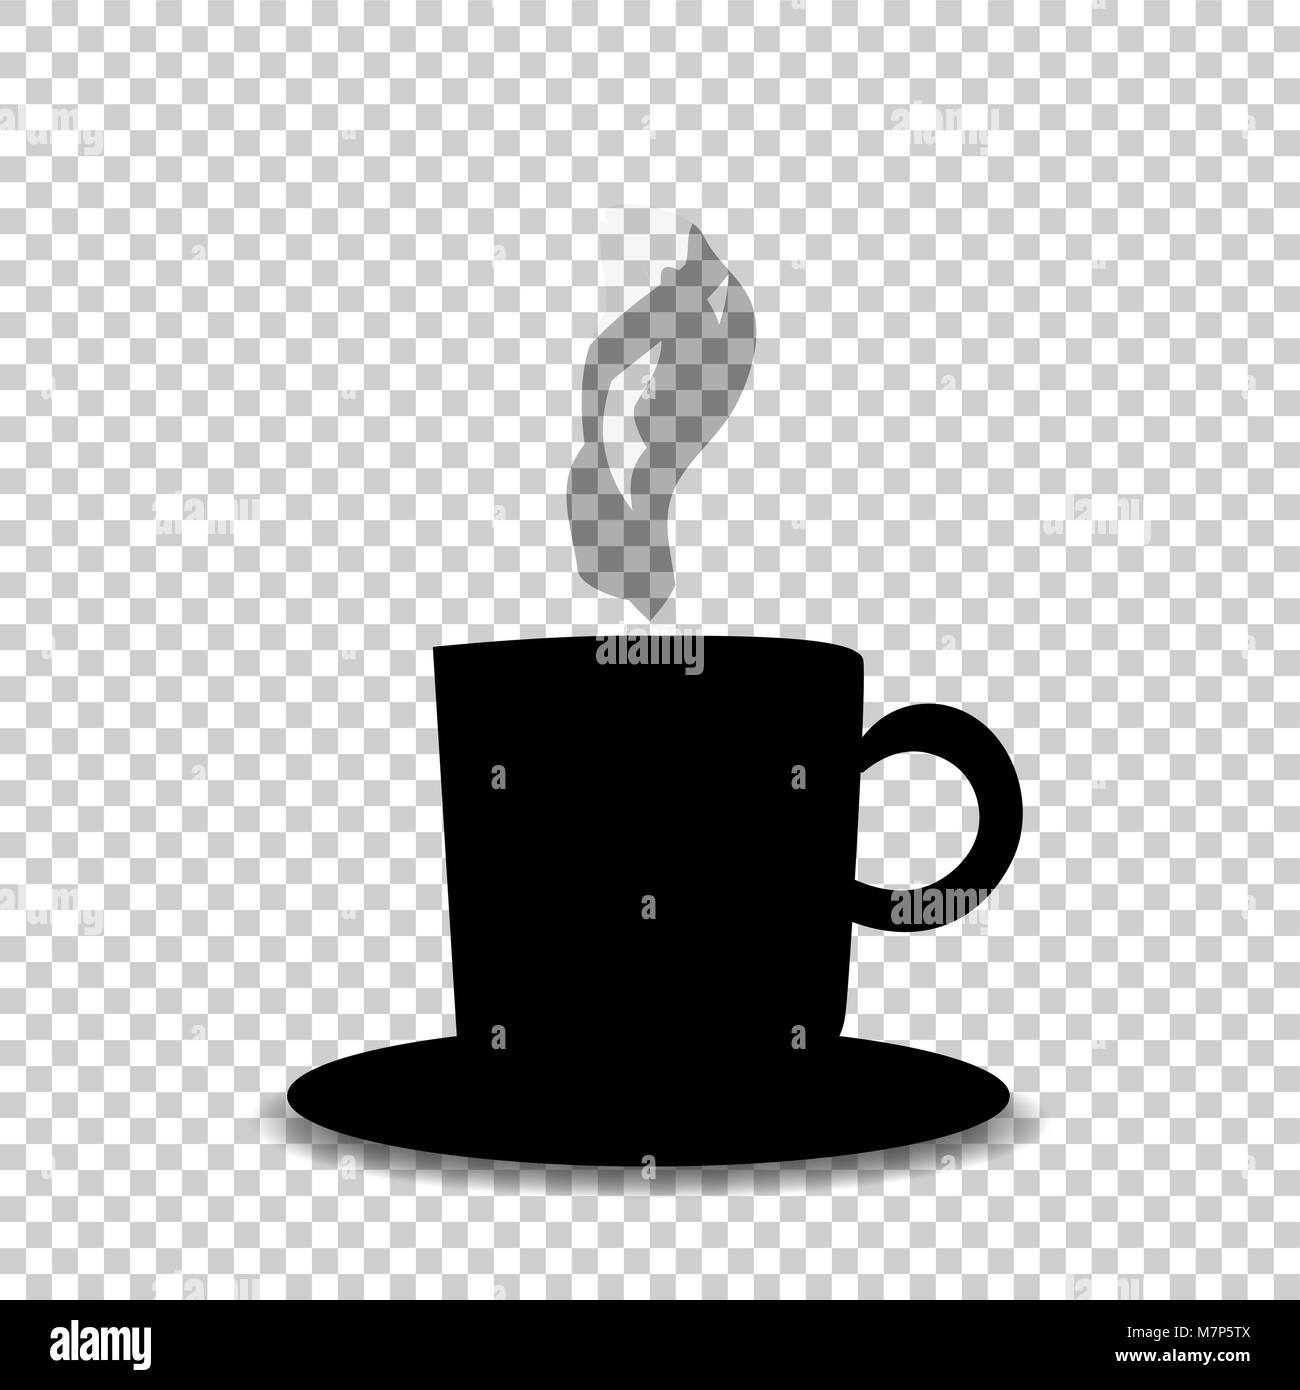 Black silhouette of tea or coffee cup with smoke isolated on transparent  background. Vector illustration, icon, - Stock Vector